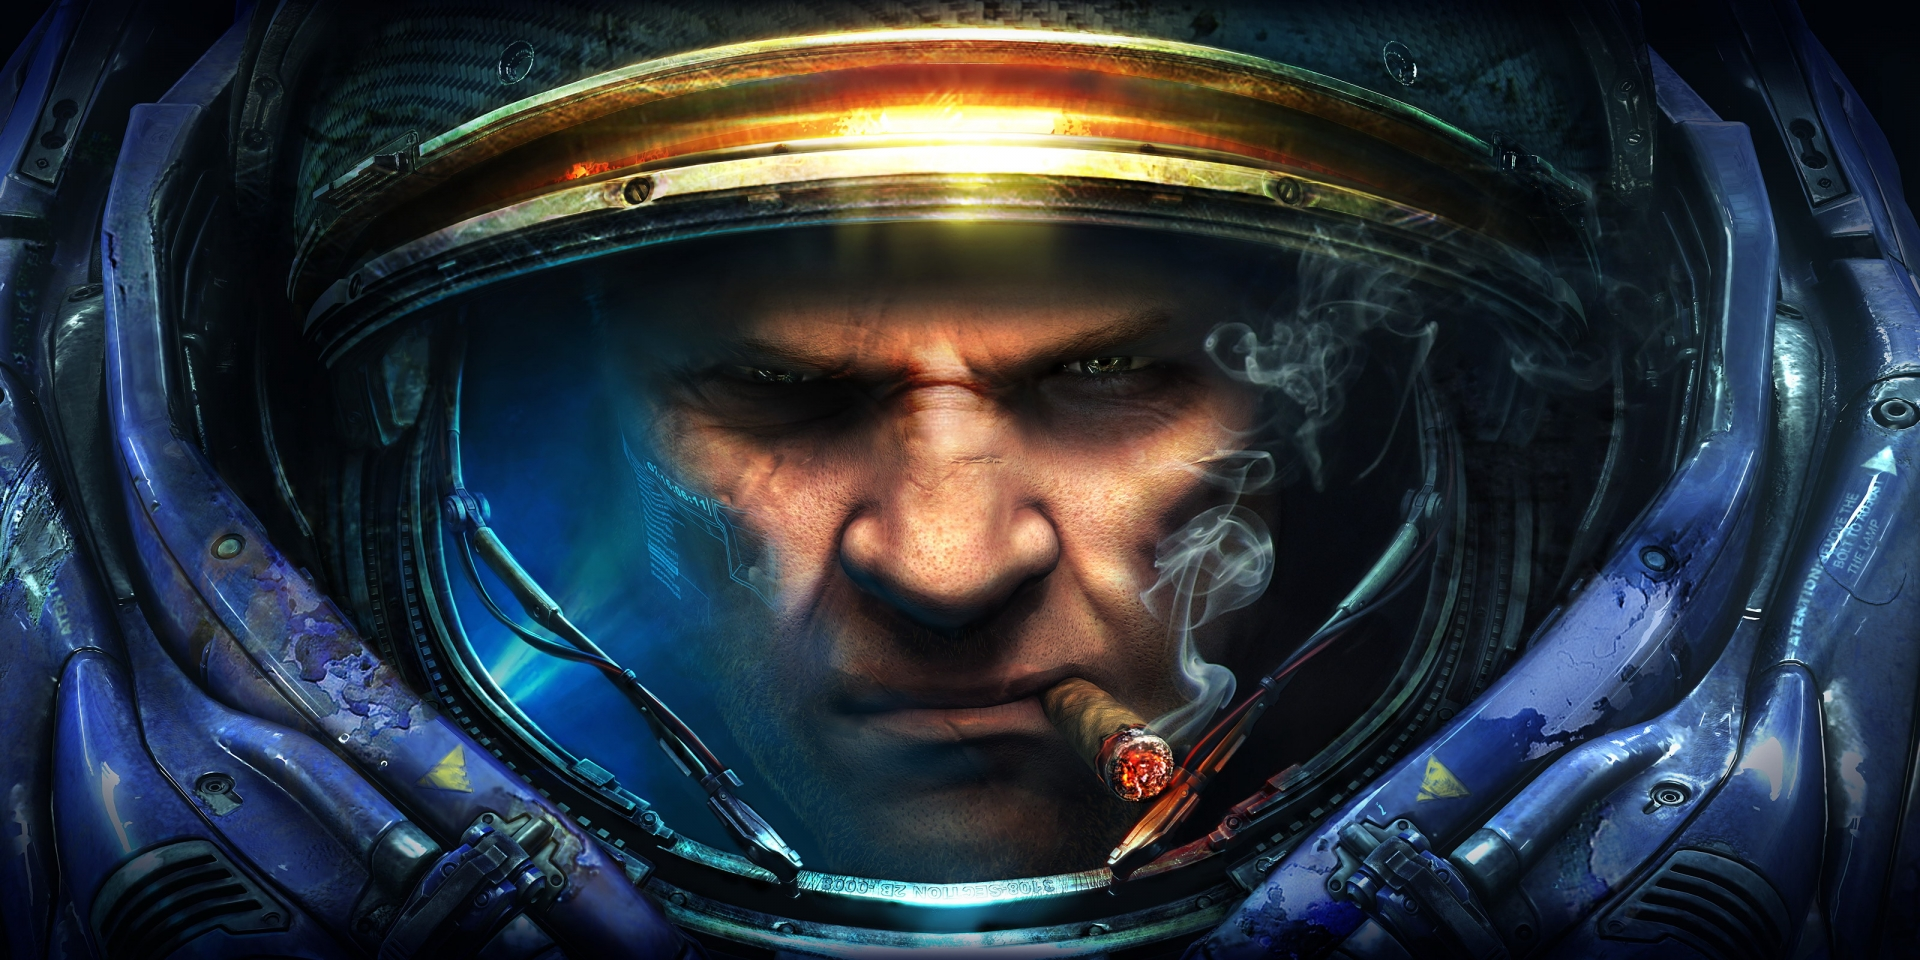 Арт к игре StarCraft 2: Wings of Liberty